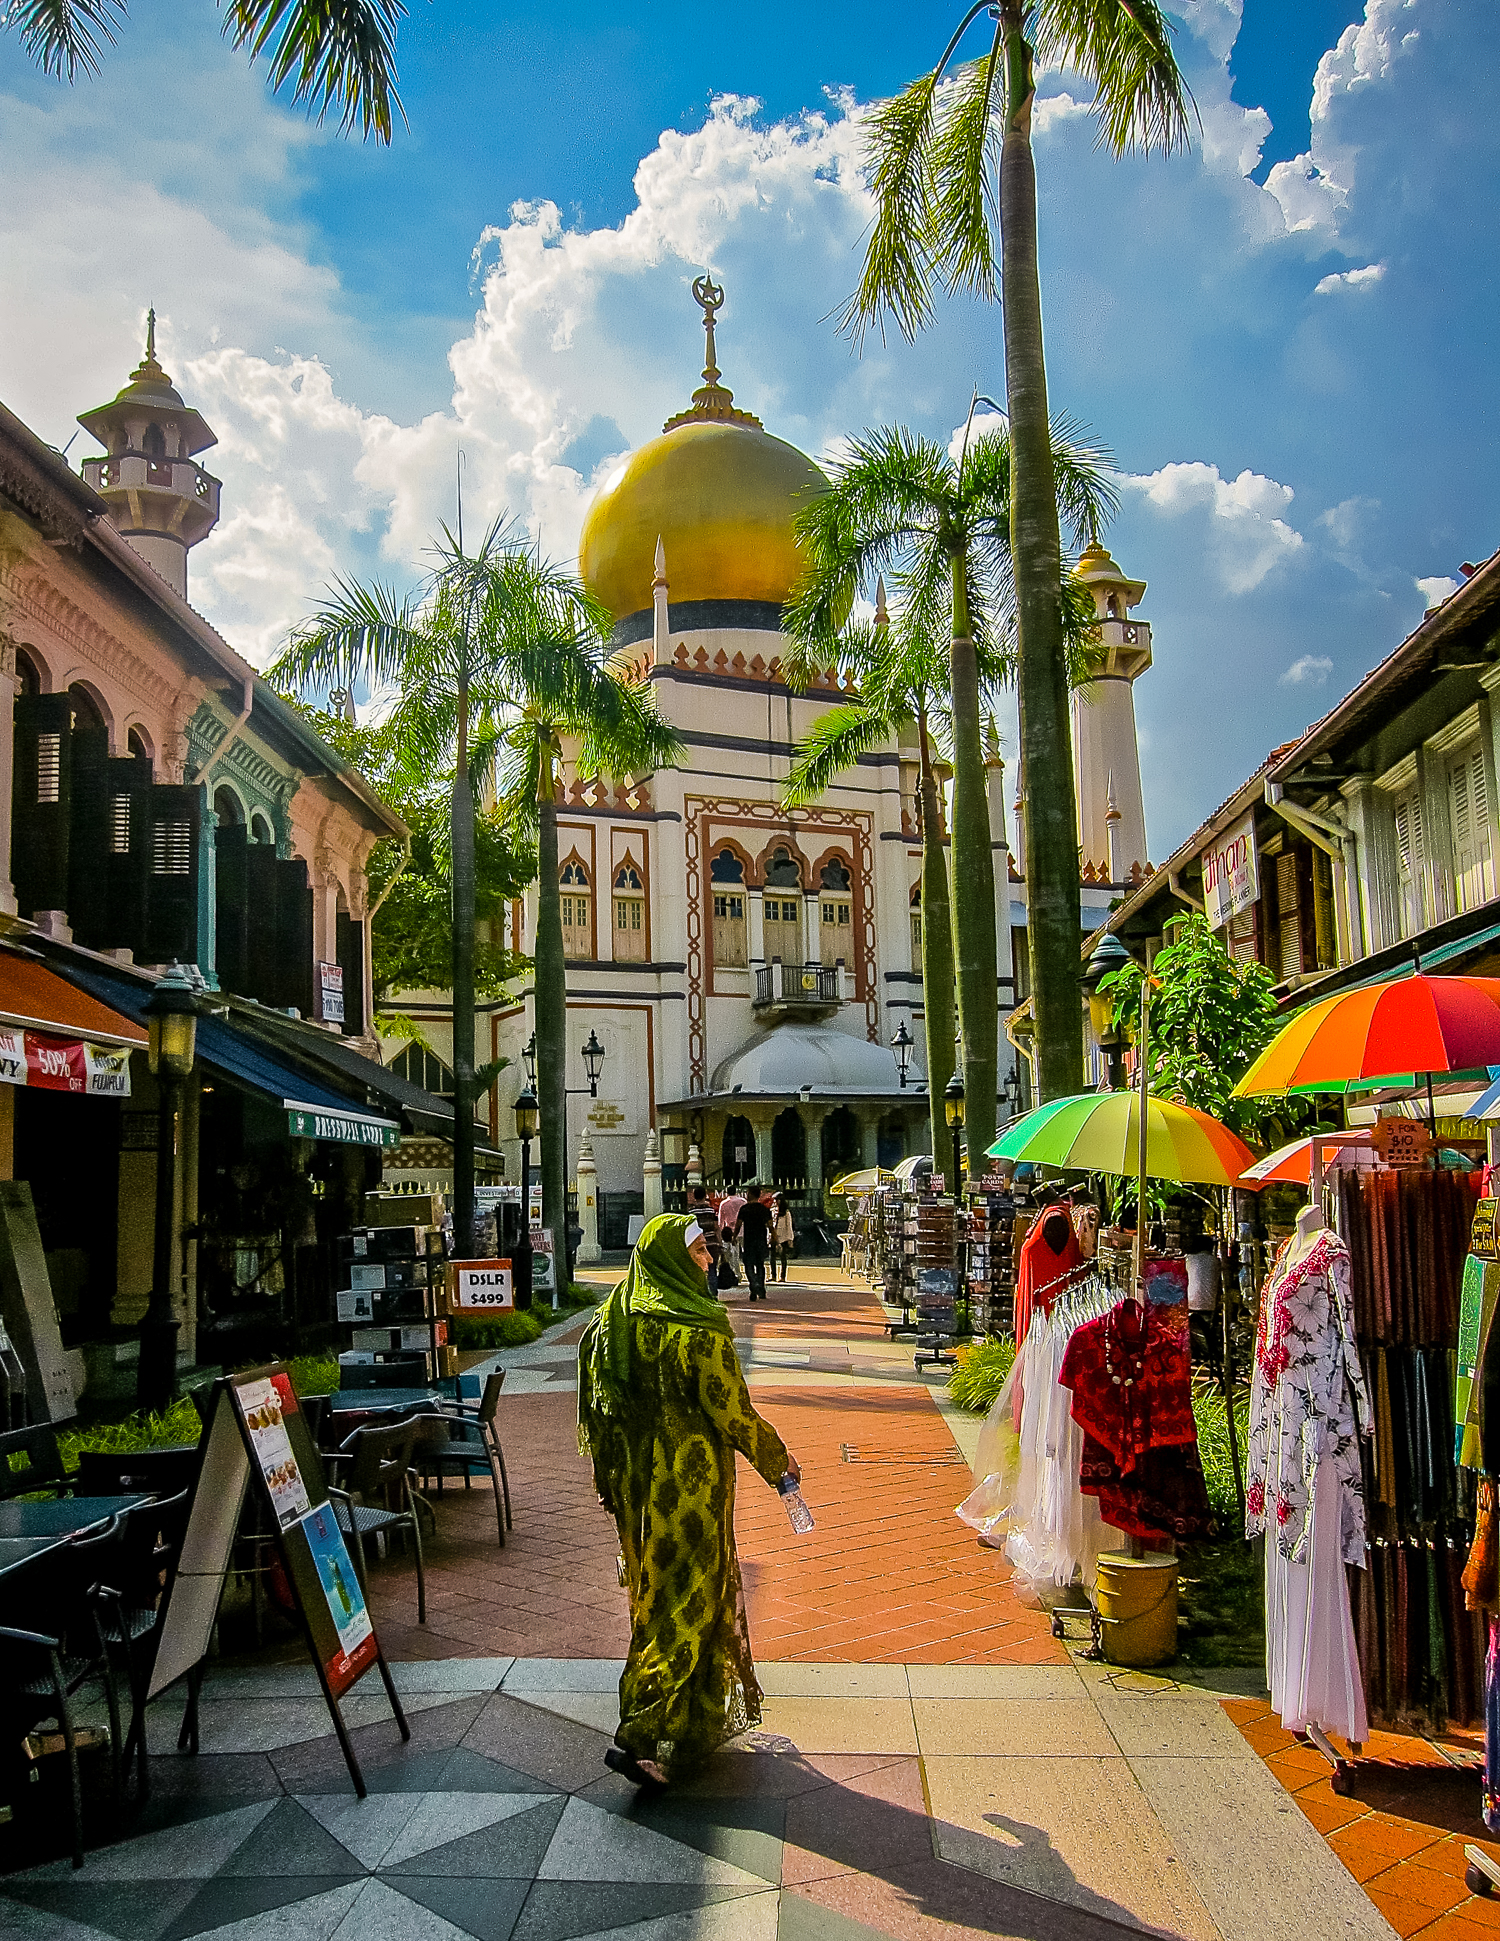 At the Market in the Arab Quarter of SIngapore.